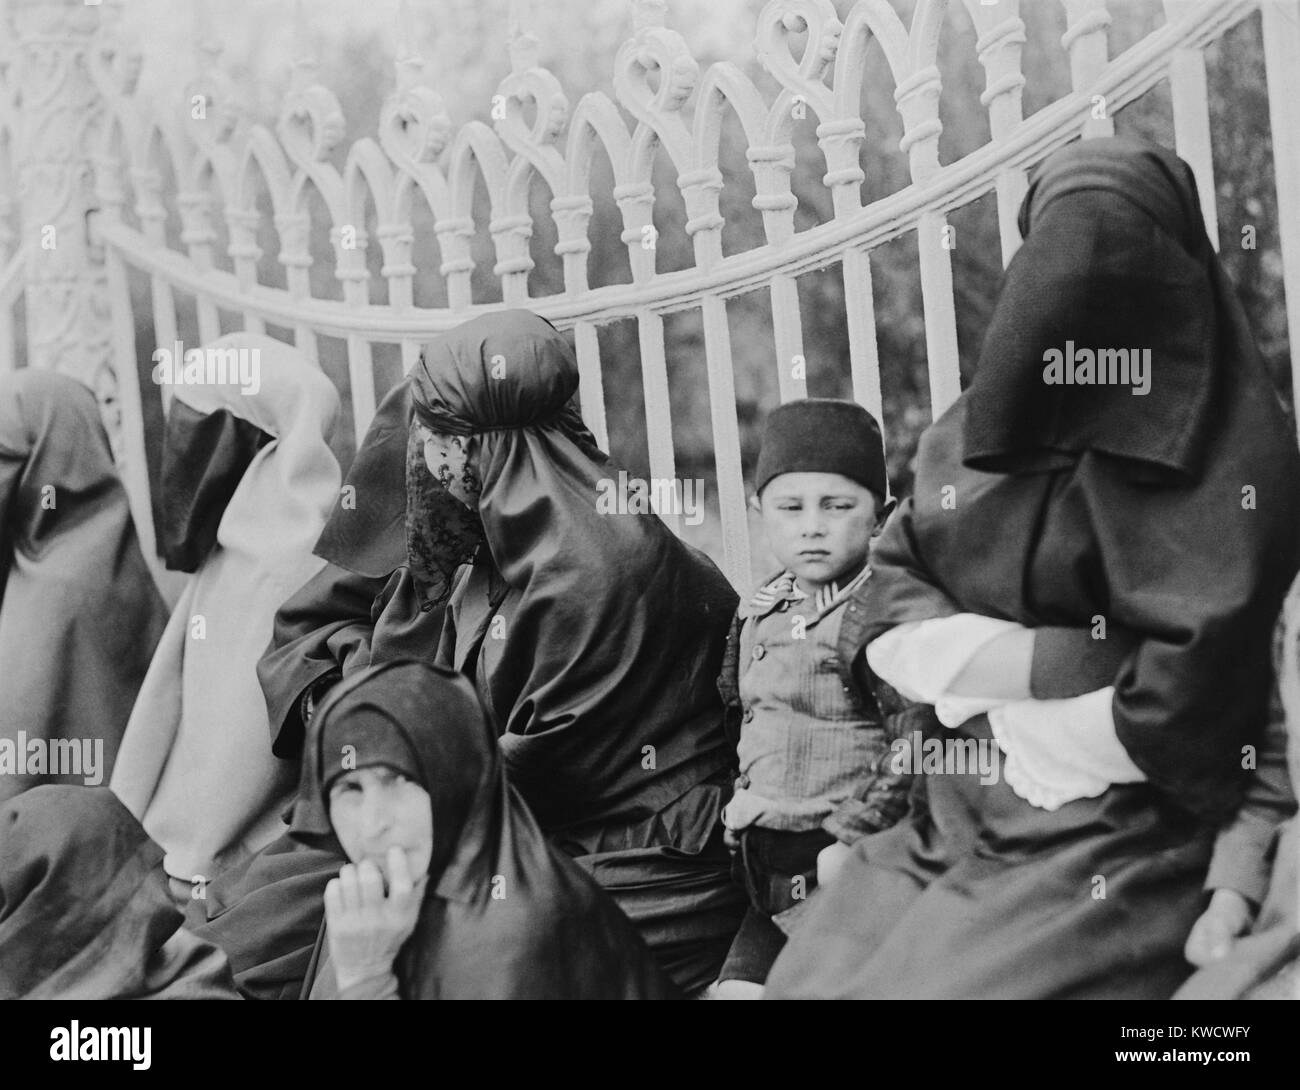 Veiled Islamic women in Constantinople in 1919. In the 1920s, the new Turkish leader, Kemal Ataturk, allowed women - Stock Image